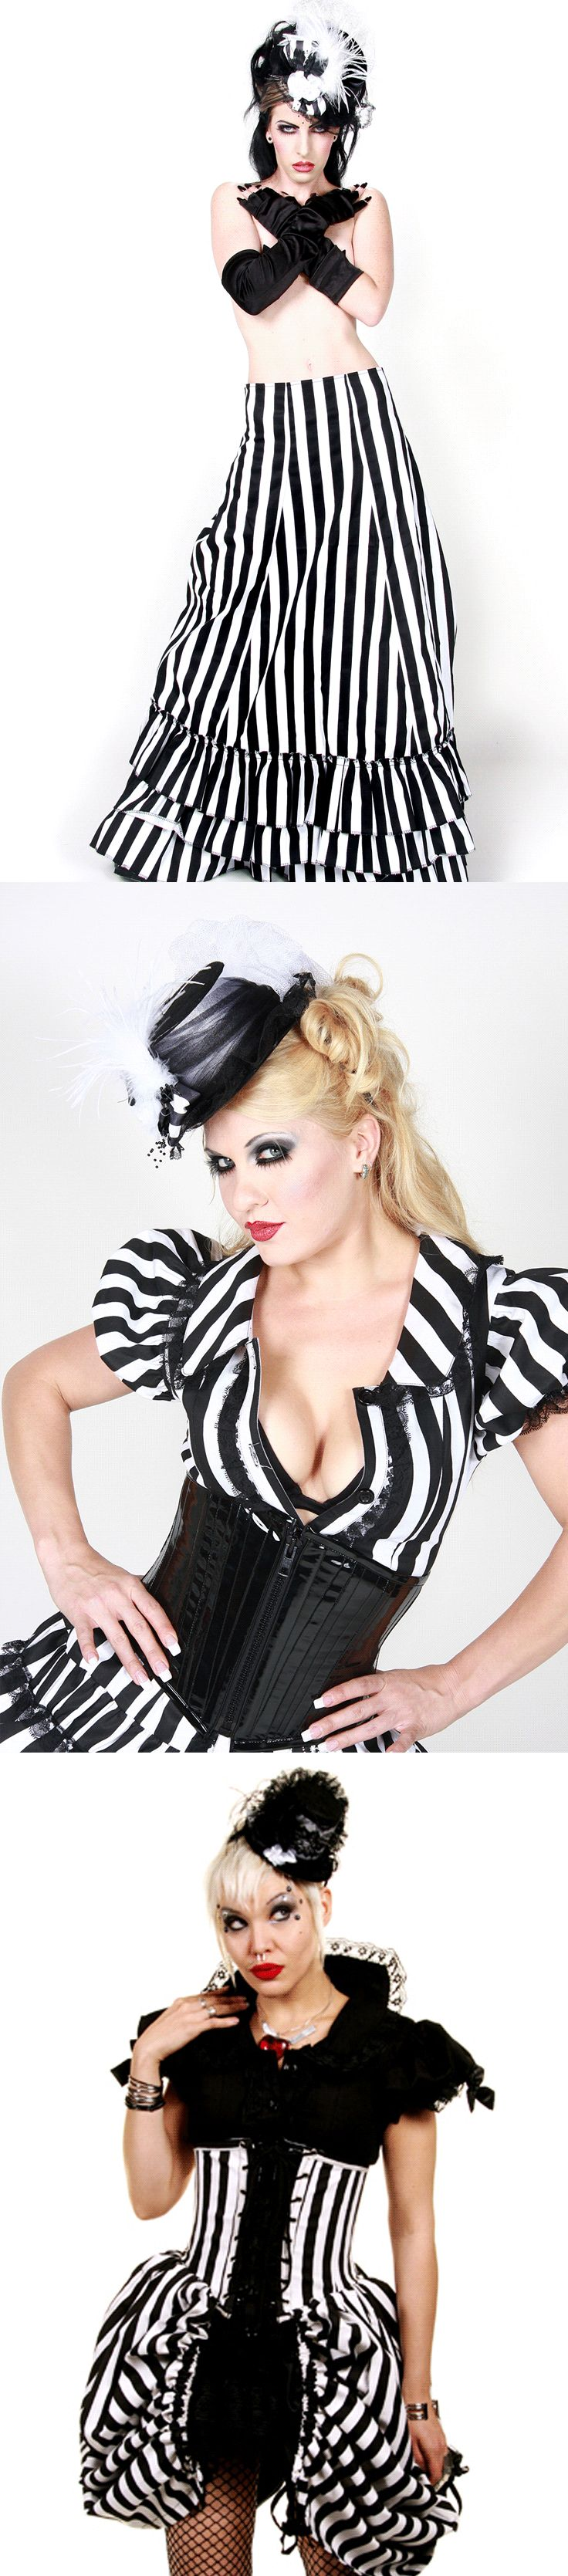 Shop burlesque Halloween corsets and skirts at RebelsMarket!